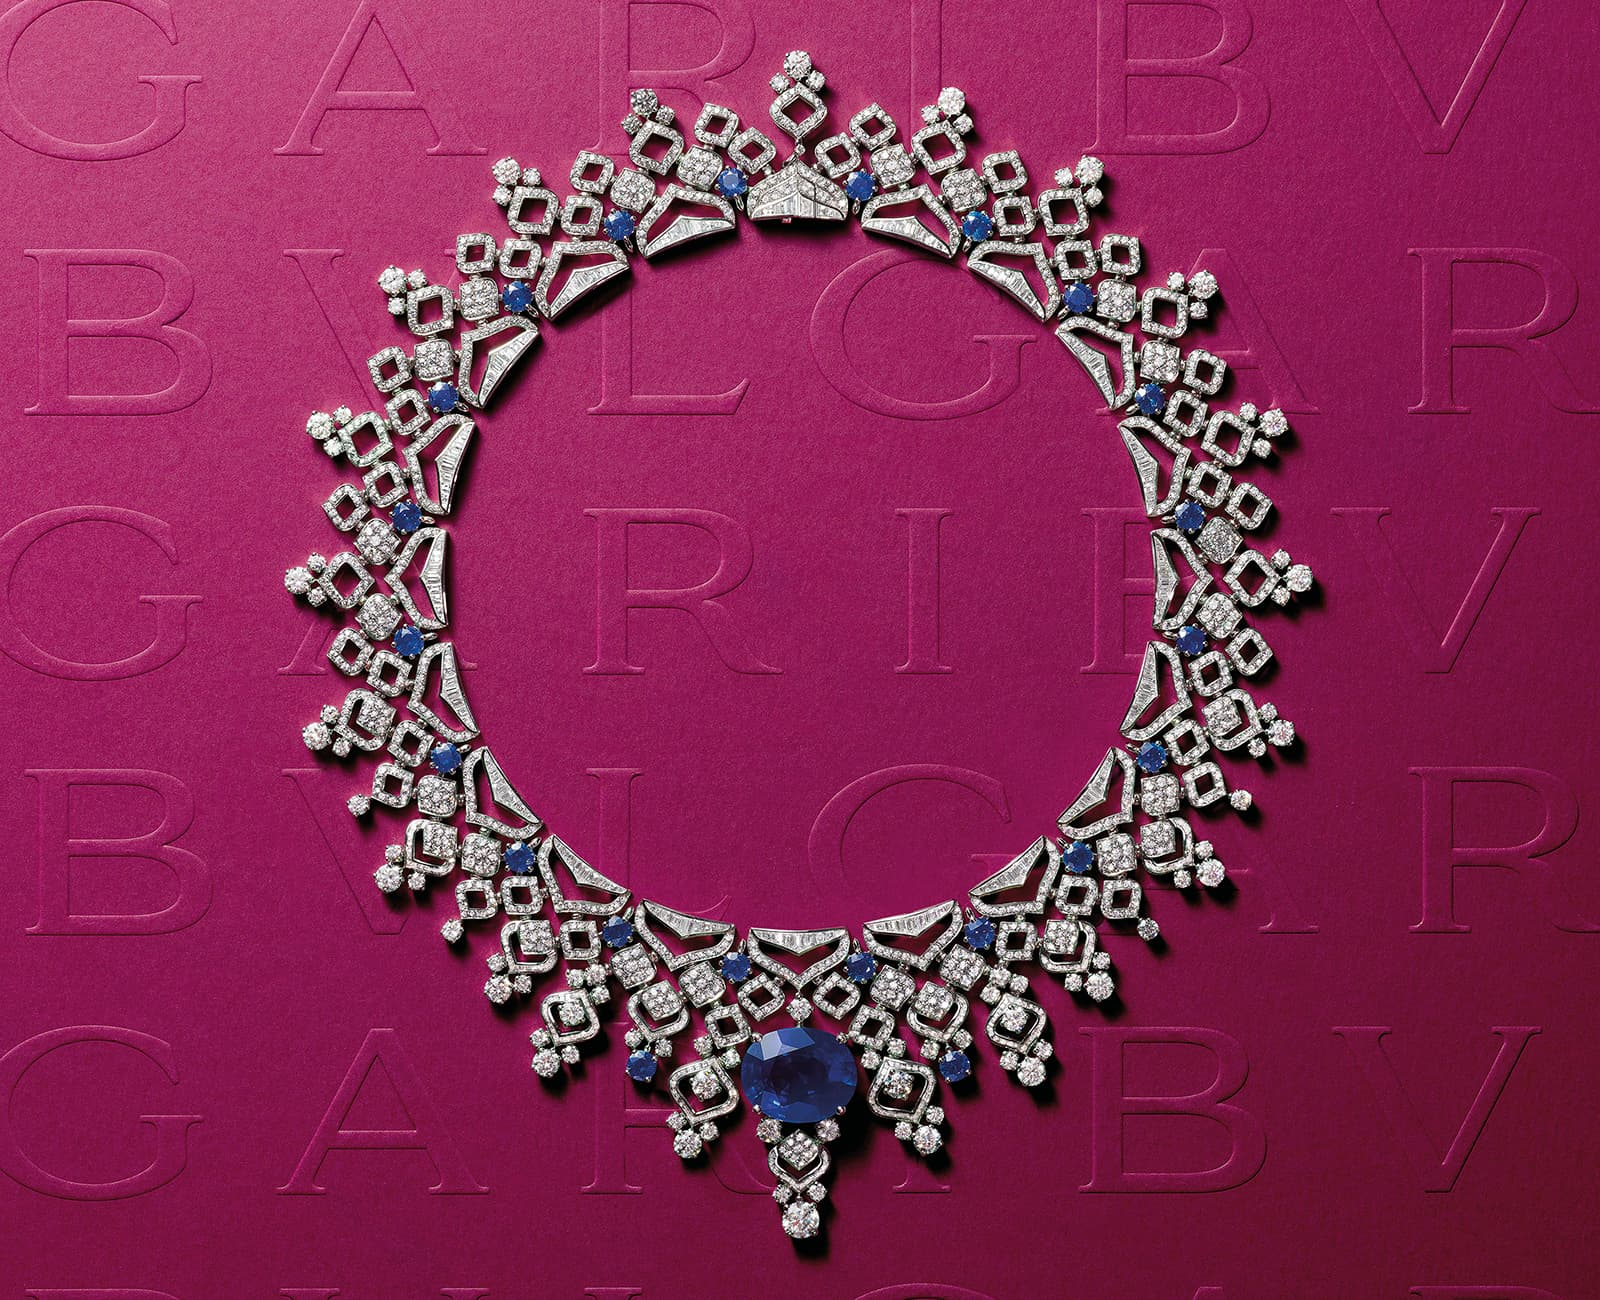 Bvlgari Barocko Sapphire Lace high jewellery necklace